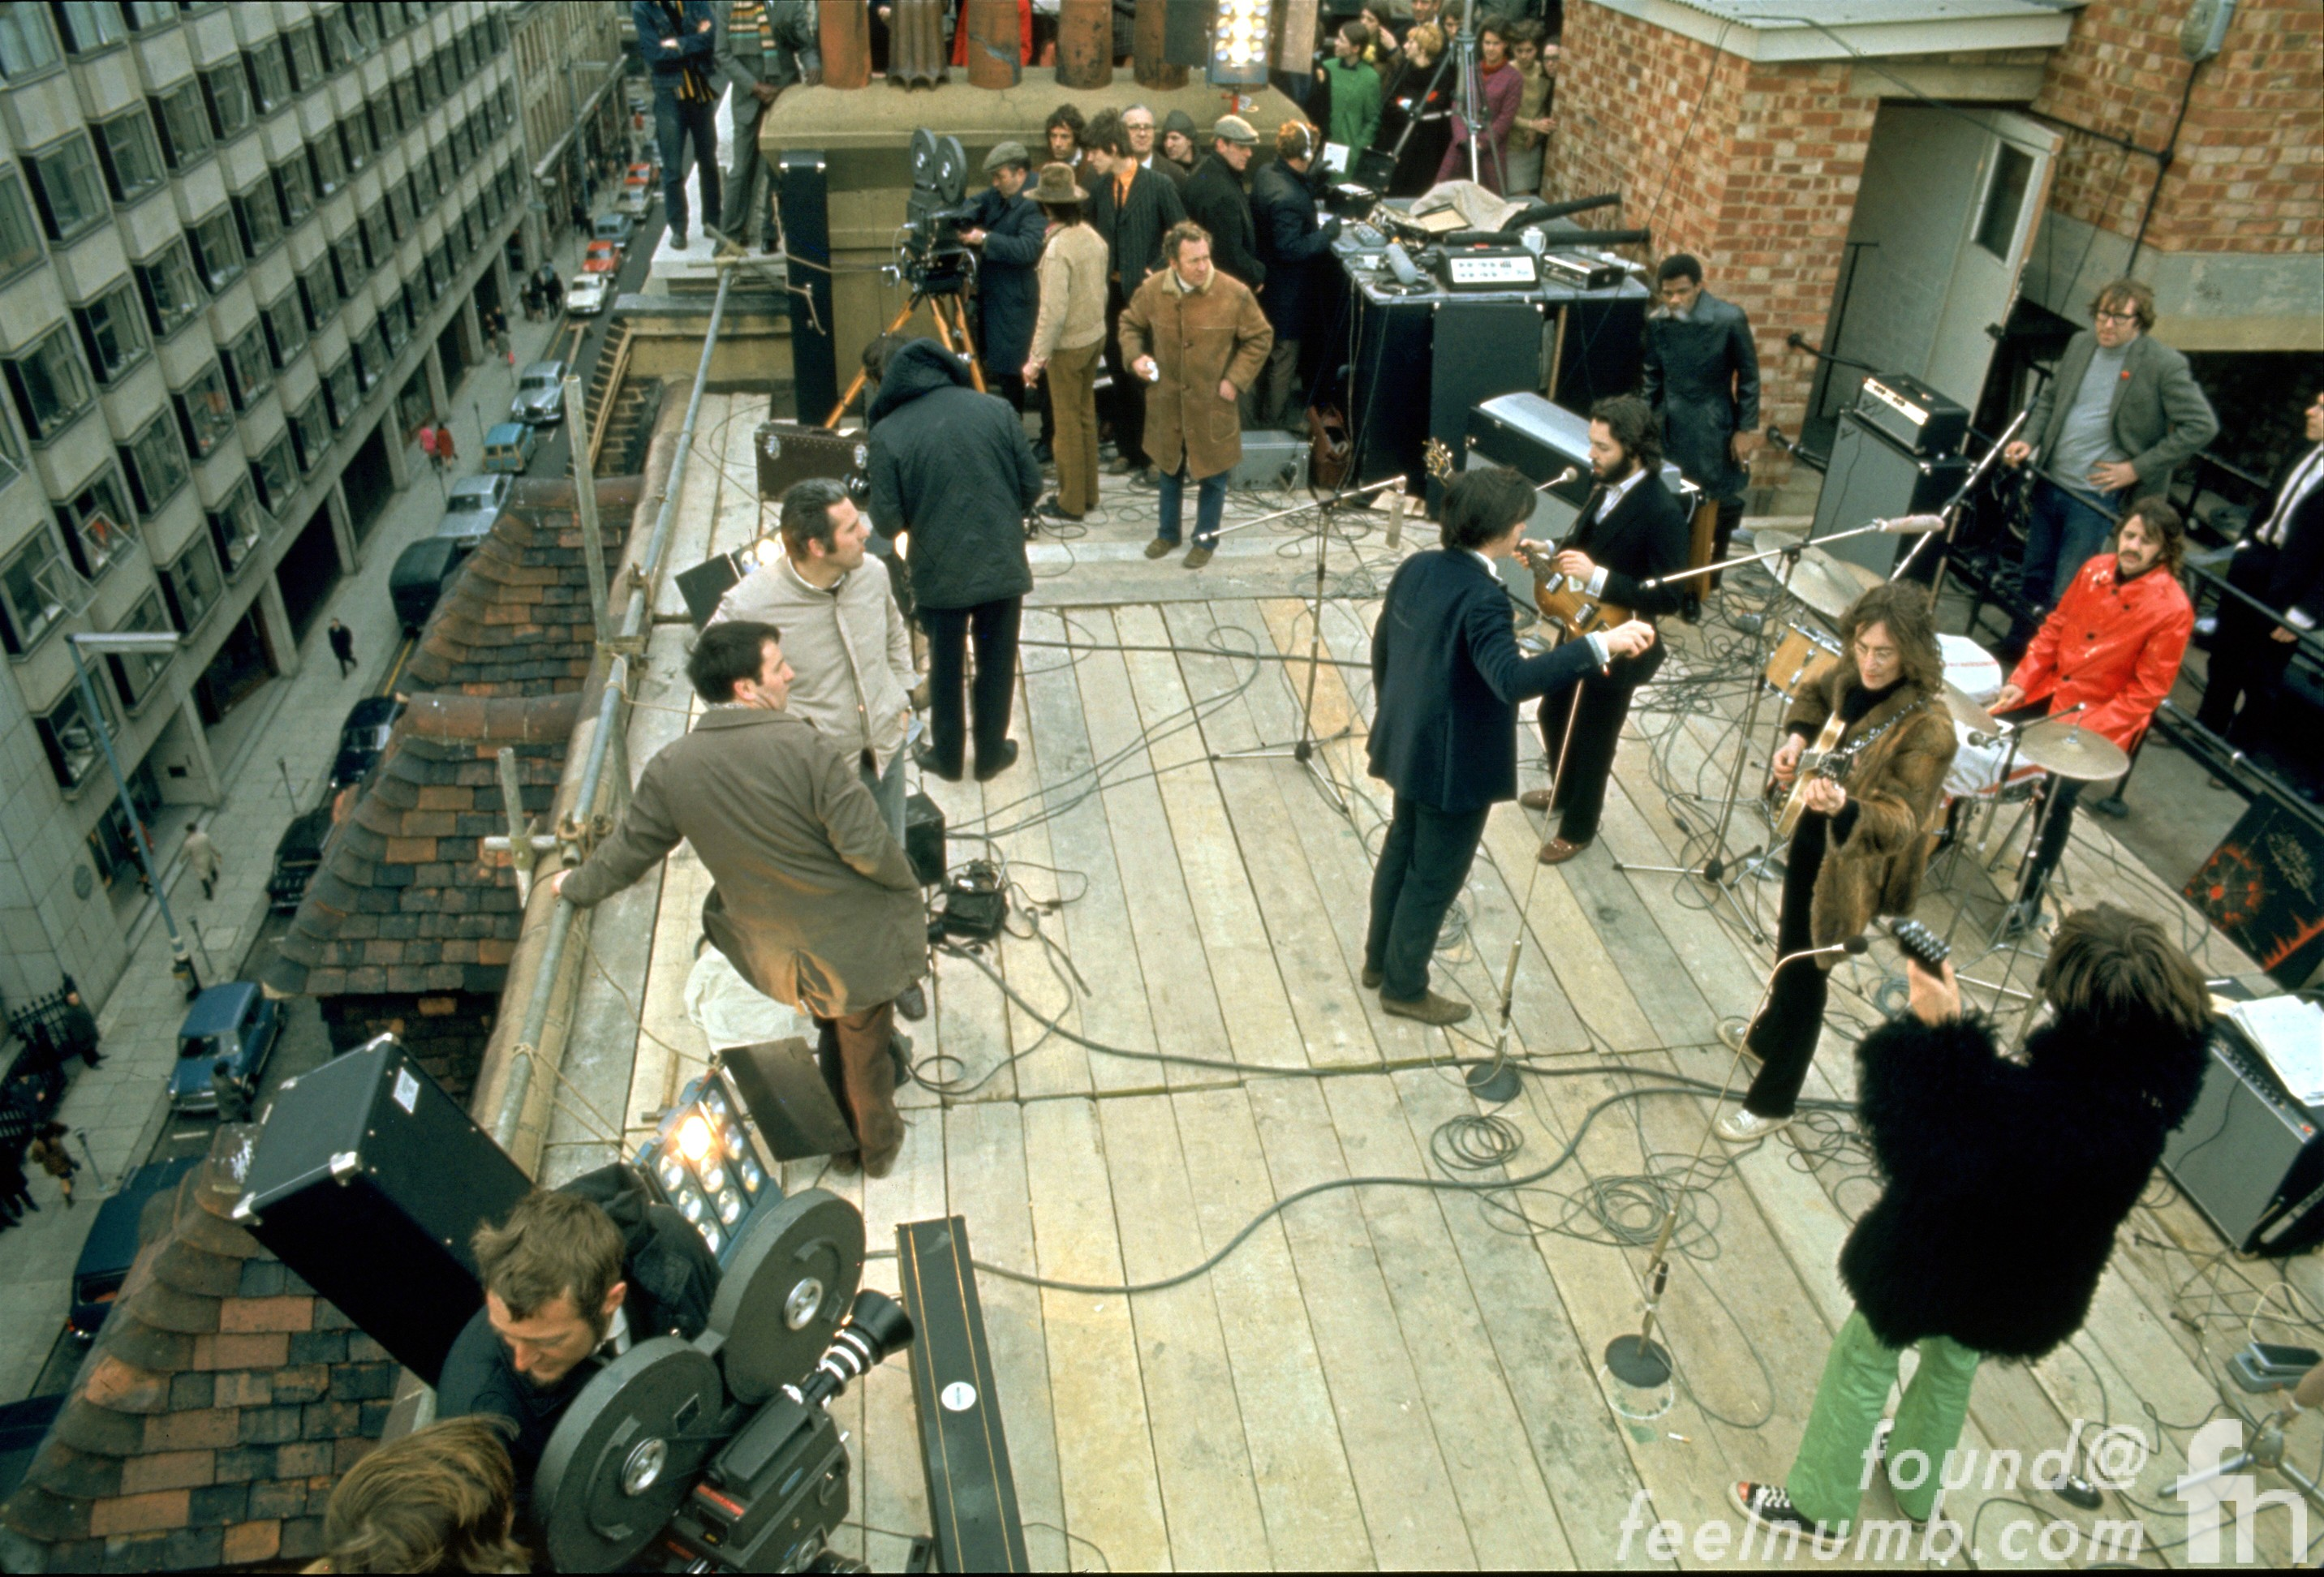 The Beatles January 30, 1969 3 Savile Row Rooftop Let It Be Concert Paul McCartney John Lennon George Harrison Ringo Starr Billy Preston Mal Evans